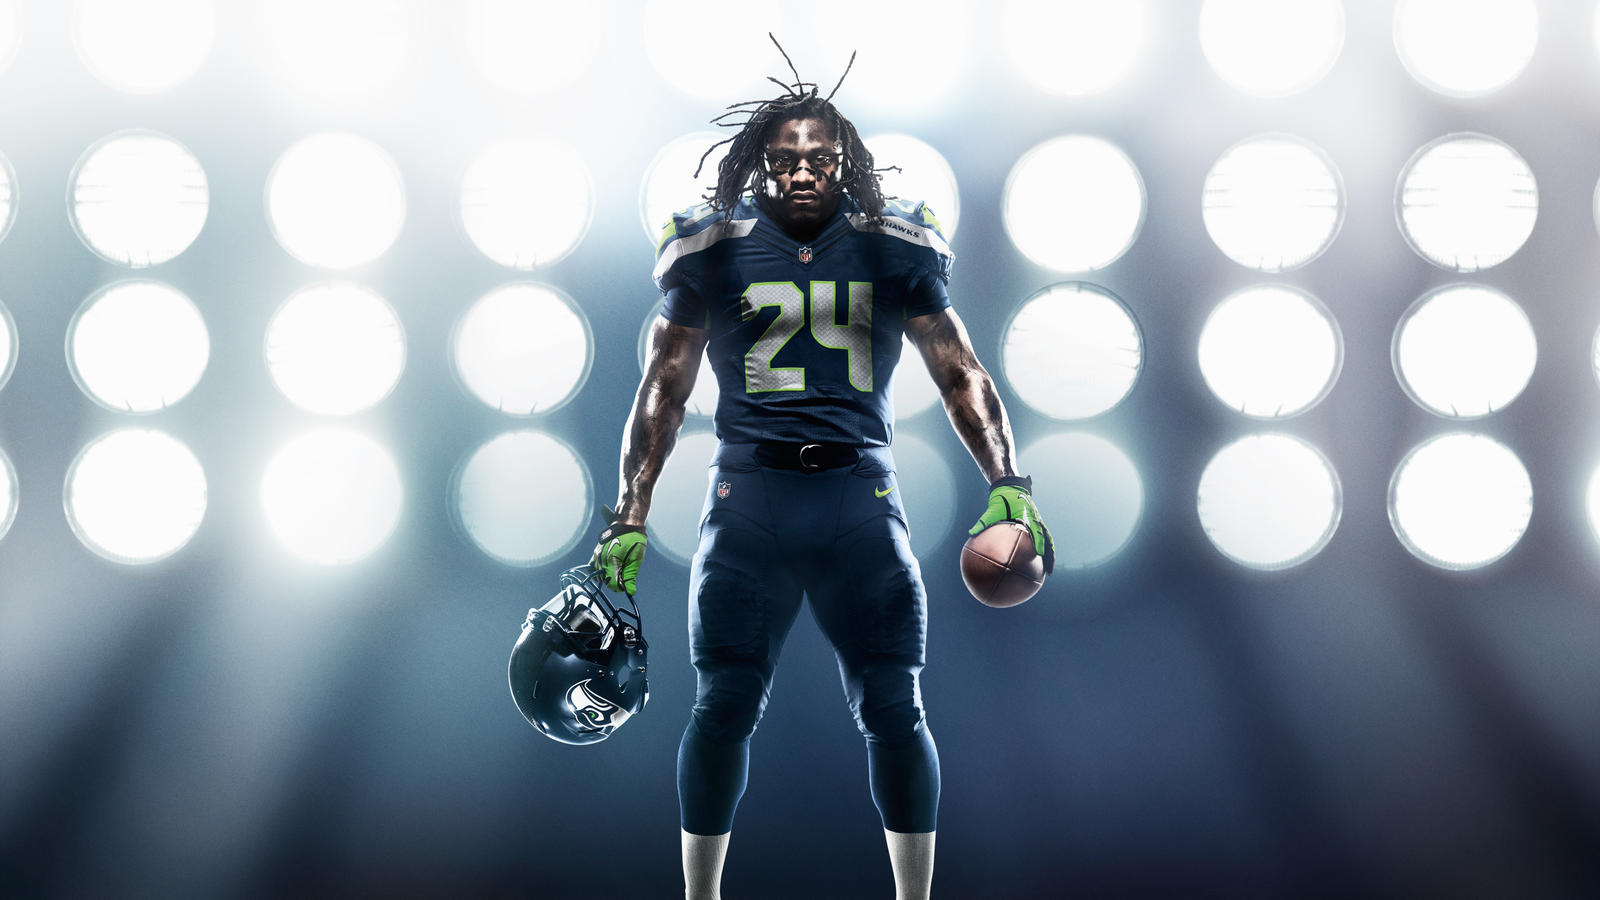 best website 5bca4 764e9 Seattle Seahawks 2012 Nike Football Uniform - Nike News